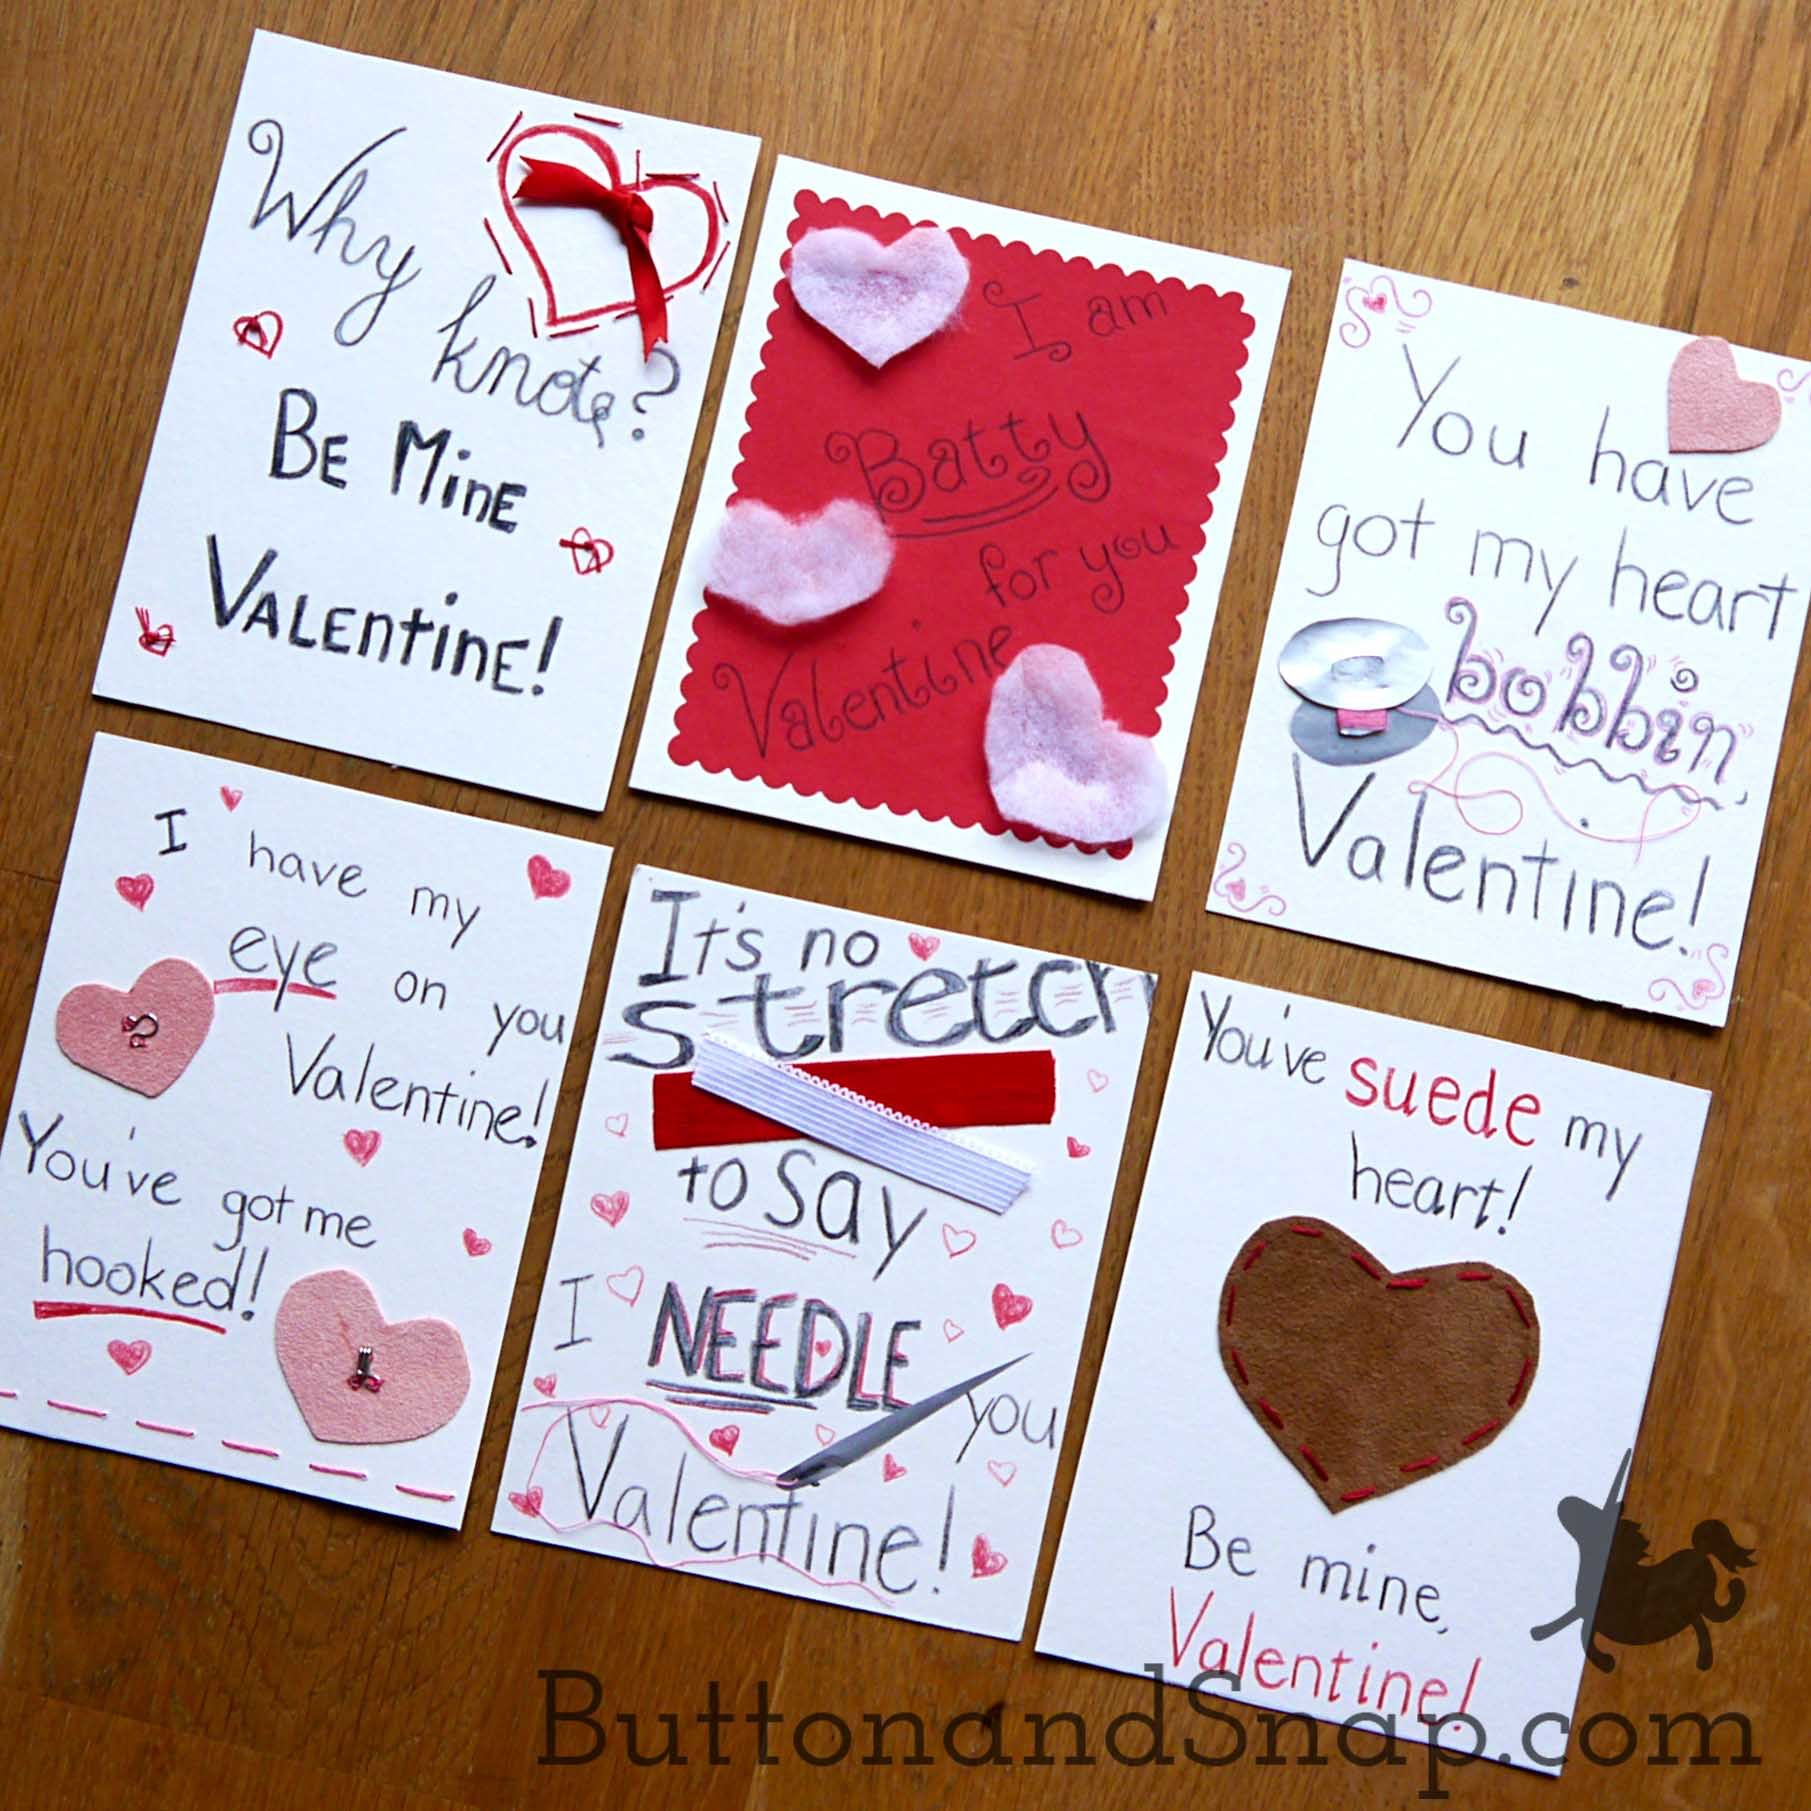 Pun-tastic Ideas for Sewing Valentines! ...well, for next year - Button &  Snap